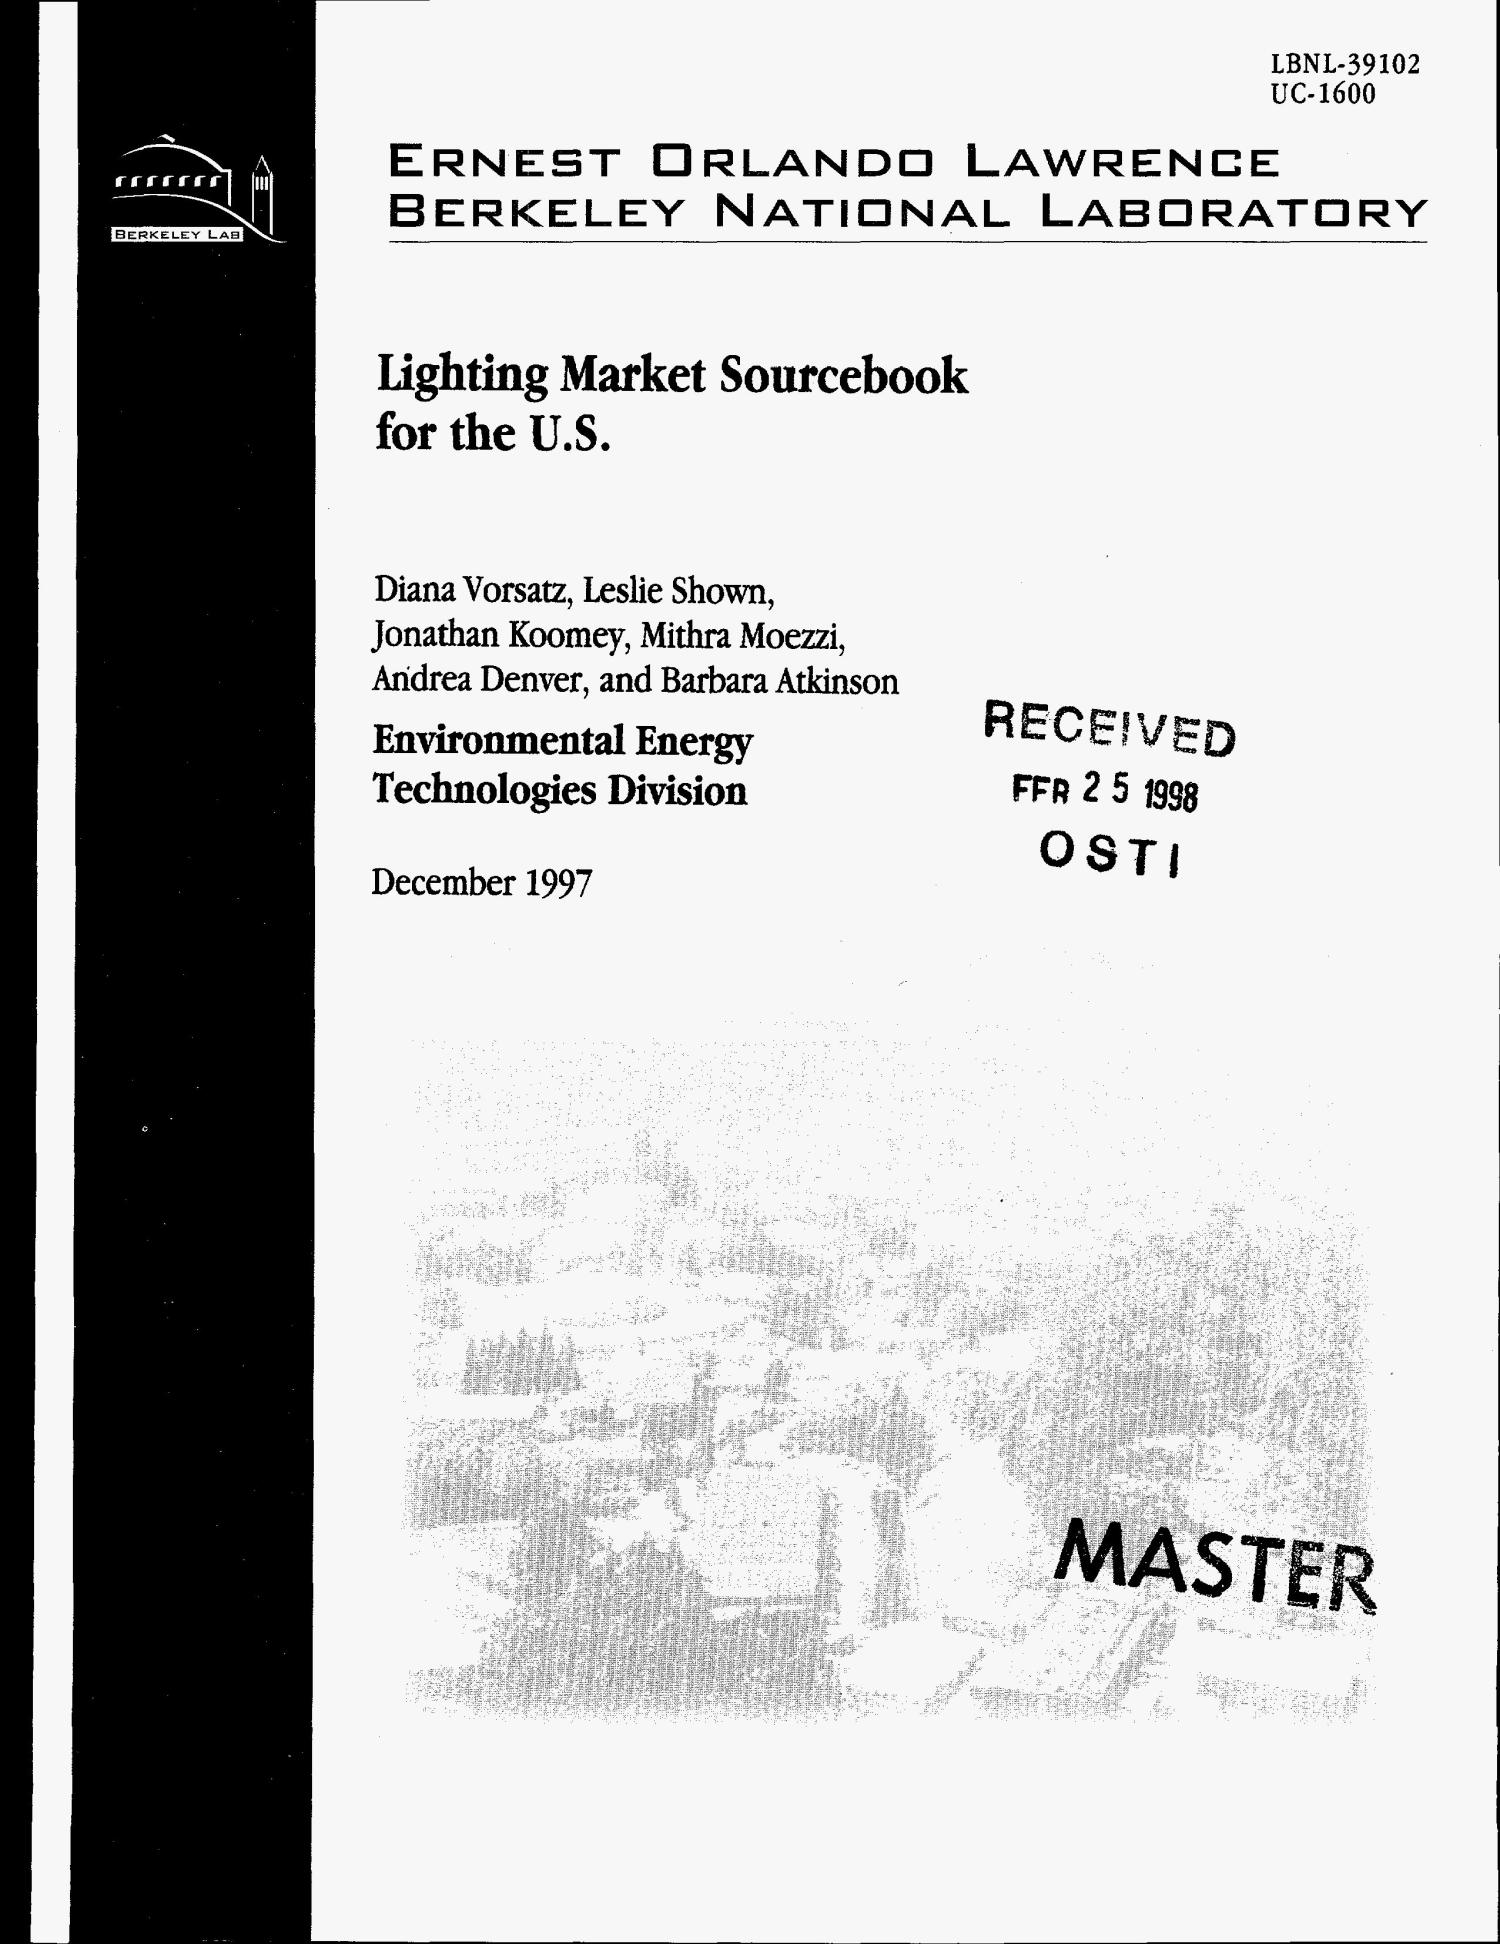 Lighting market sourcebook for the US                                                                                                      [Sequence #]: 1 of 160